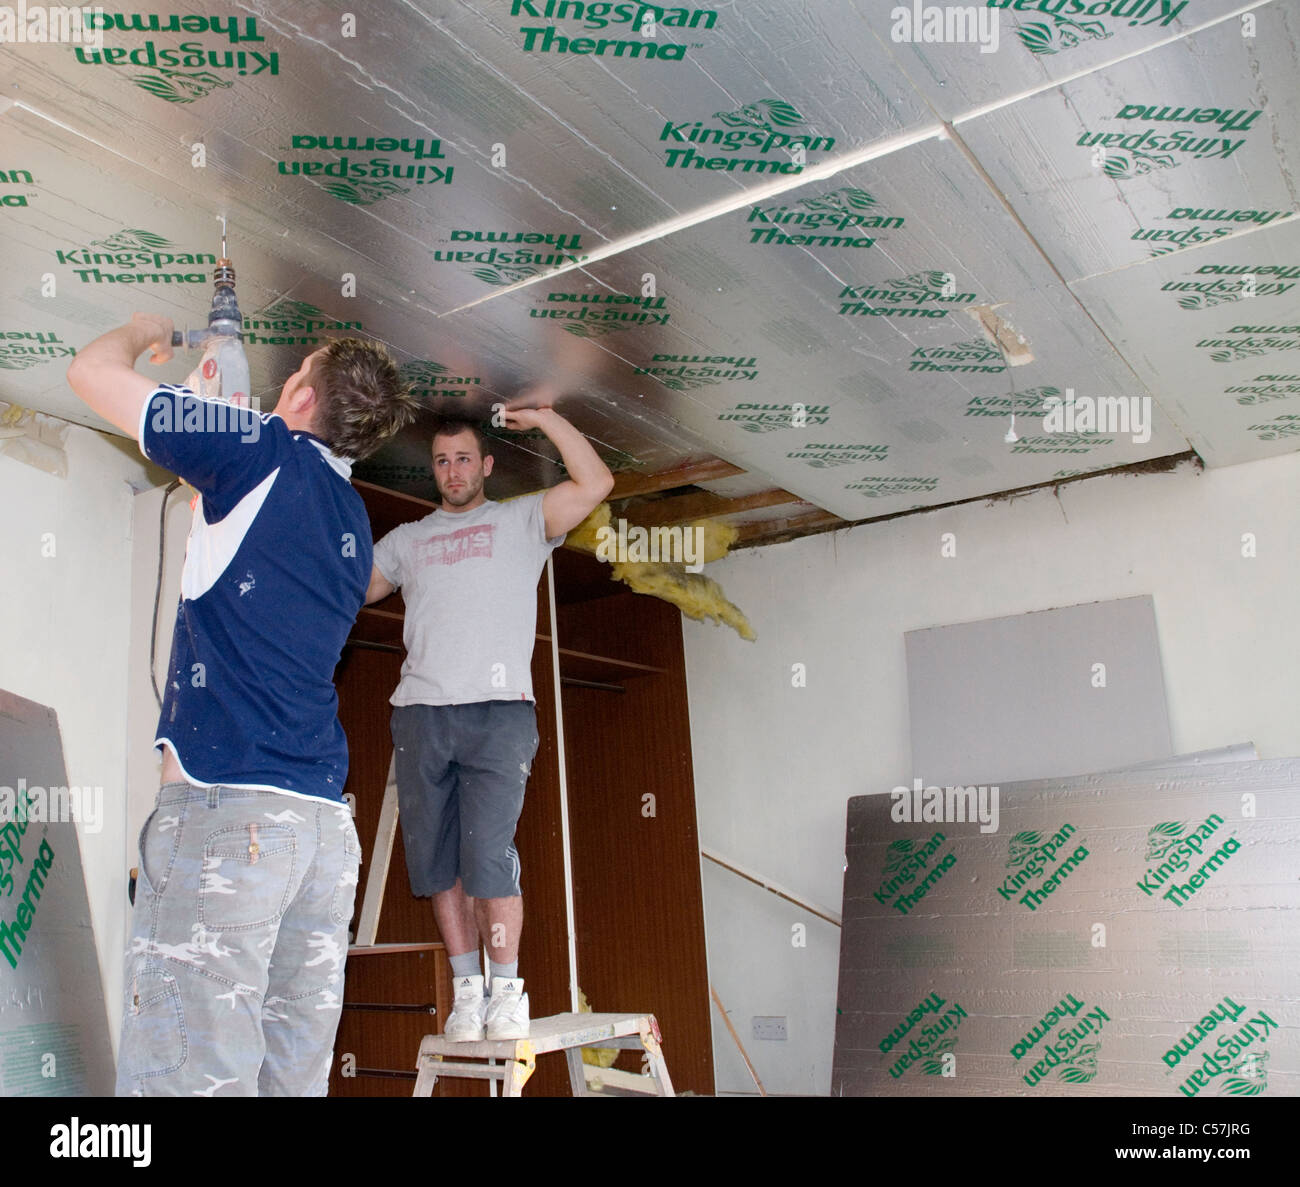 Sound insulation stock photos sound insulation stock images alamy builders installing high performance kingspan and celotex thermal insulation boards to the walls and ceiling of dailygadgetfo Choice Image